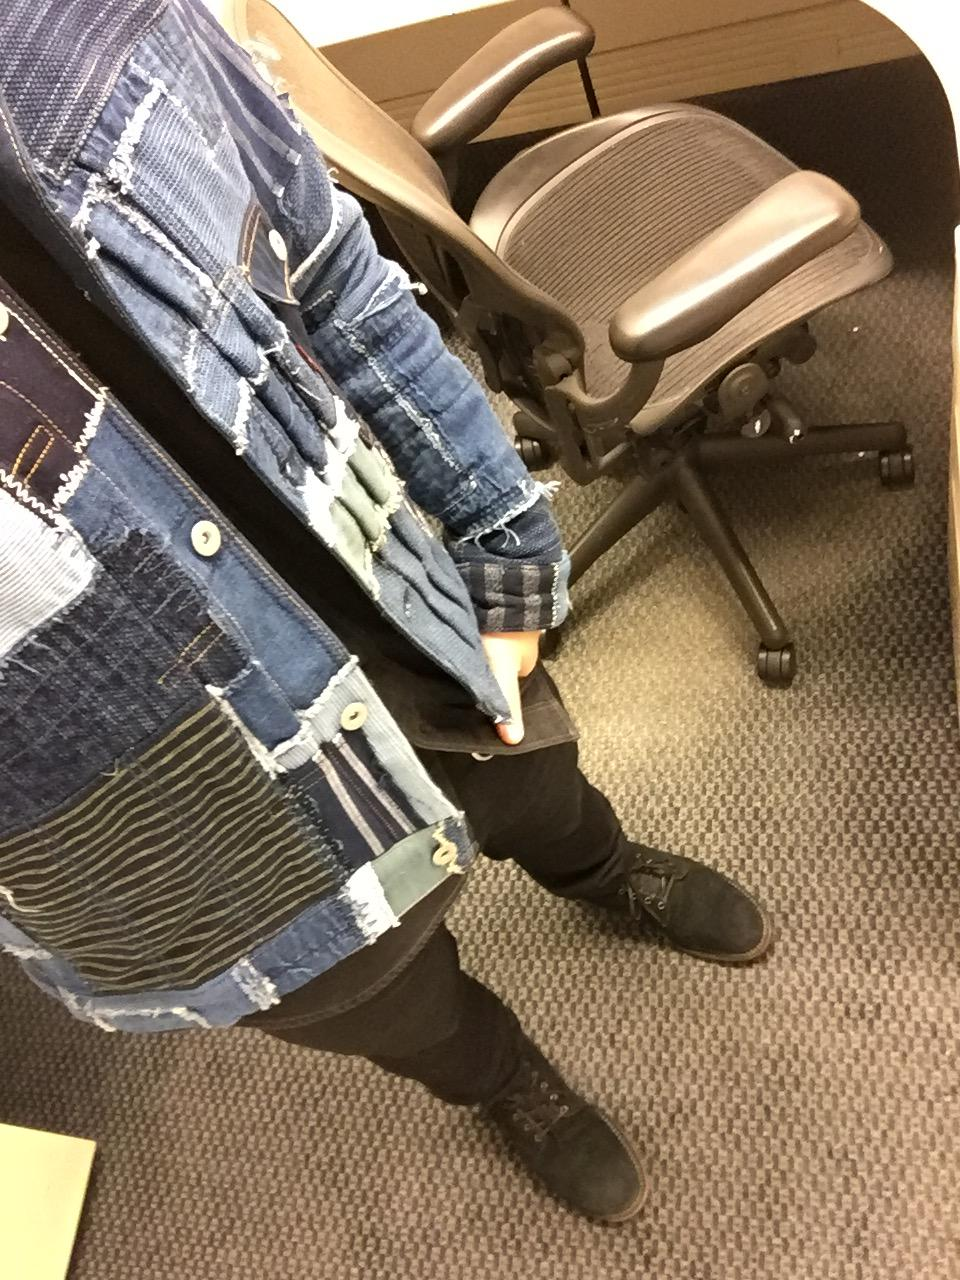 Vickt's photos in The WAYWT Discussion Thread, Part II